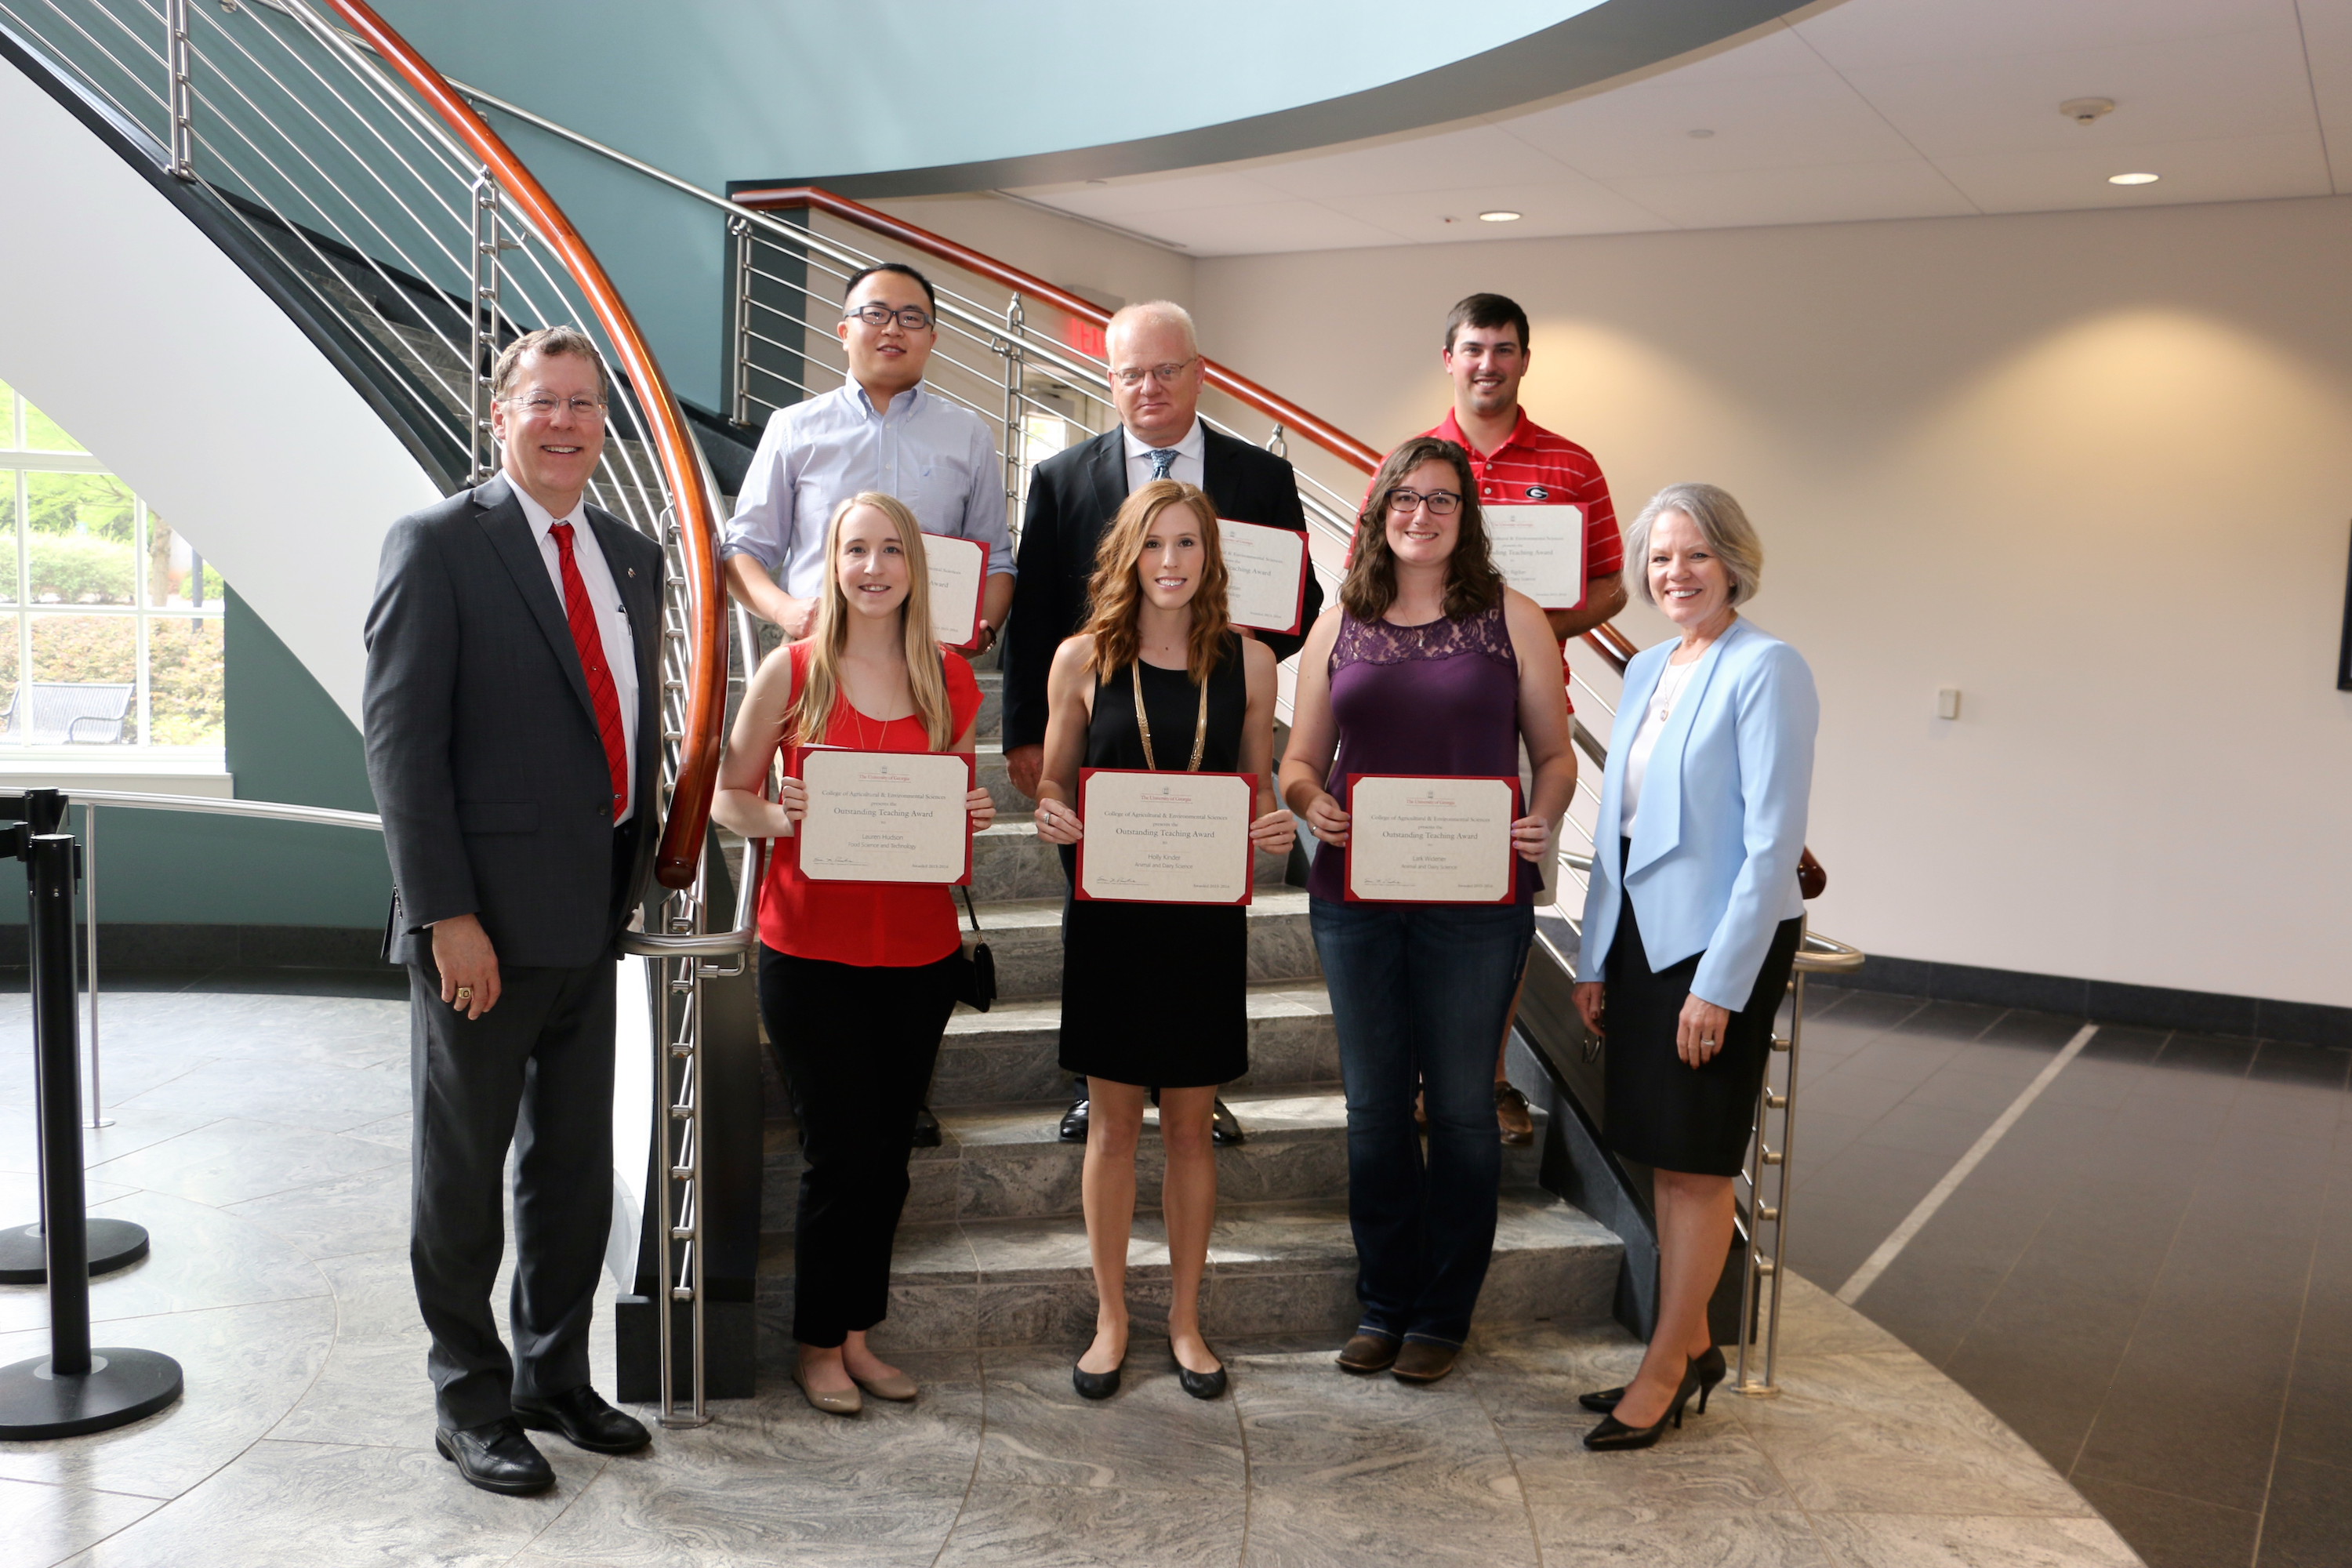 UGA College of Agricultural and Environmental Sciences Dean and Director Sam Pardue, far left, and CAES Assistant Dean for Academic Affairs Jean Bertrand, far right, congratulate the 2016 Outstanding Teaching Awards to CAES graduate students, including (from left, back row) Mingle Gao, Brian Jordan and Macc Rigdon; (from left, front row) Lauren Hudson, Holly Kinder and Lark Widener.